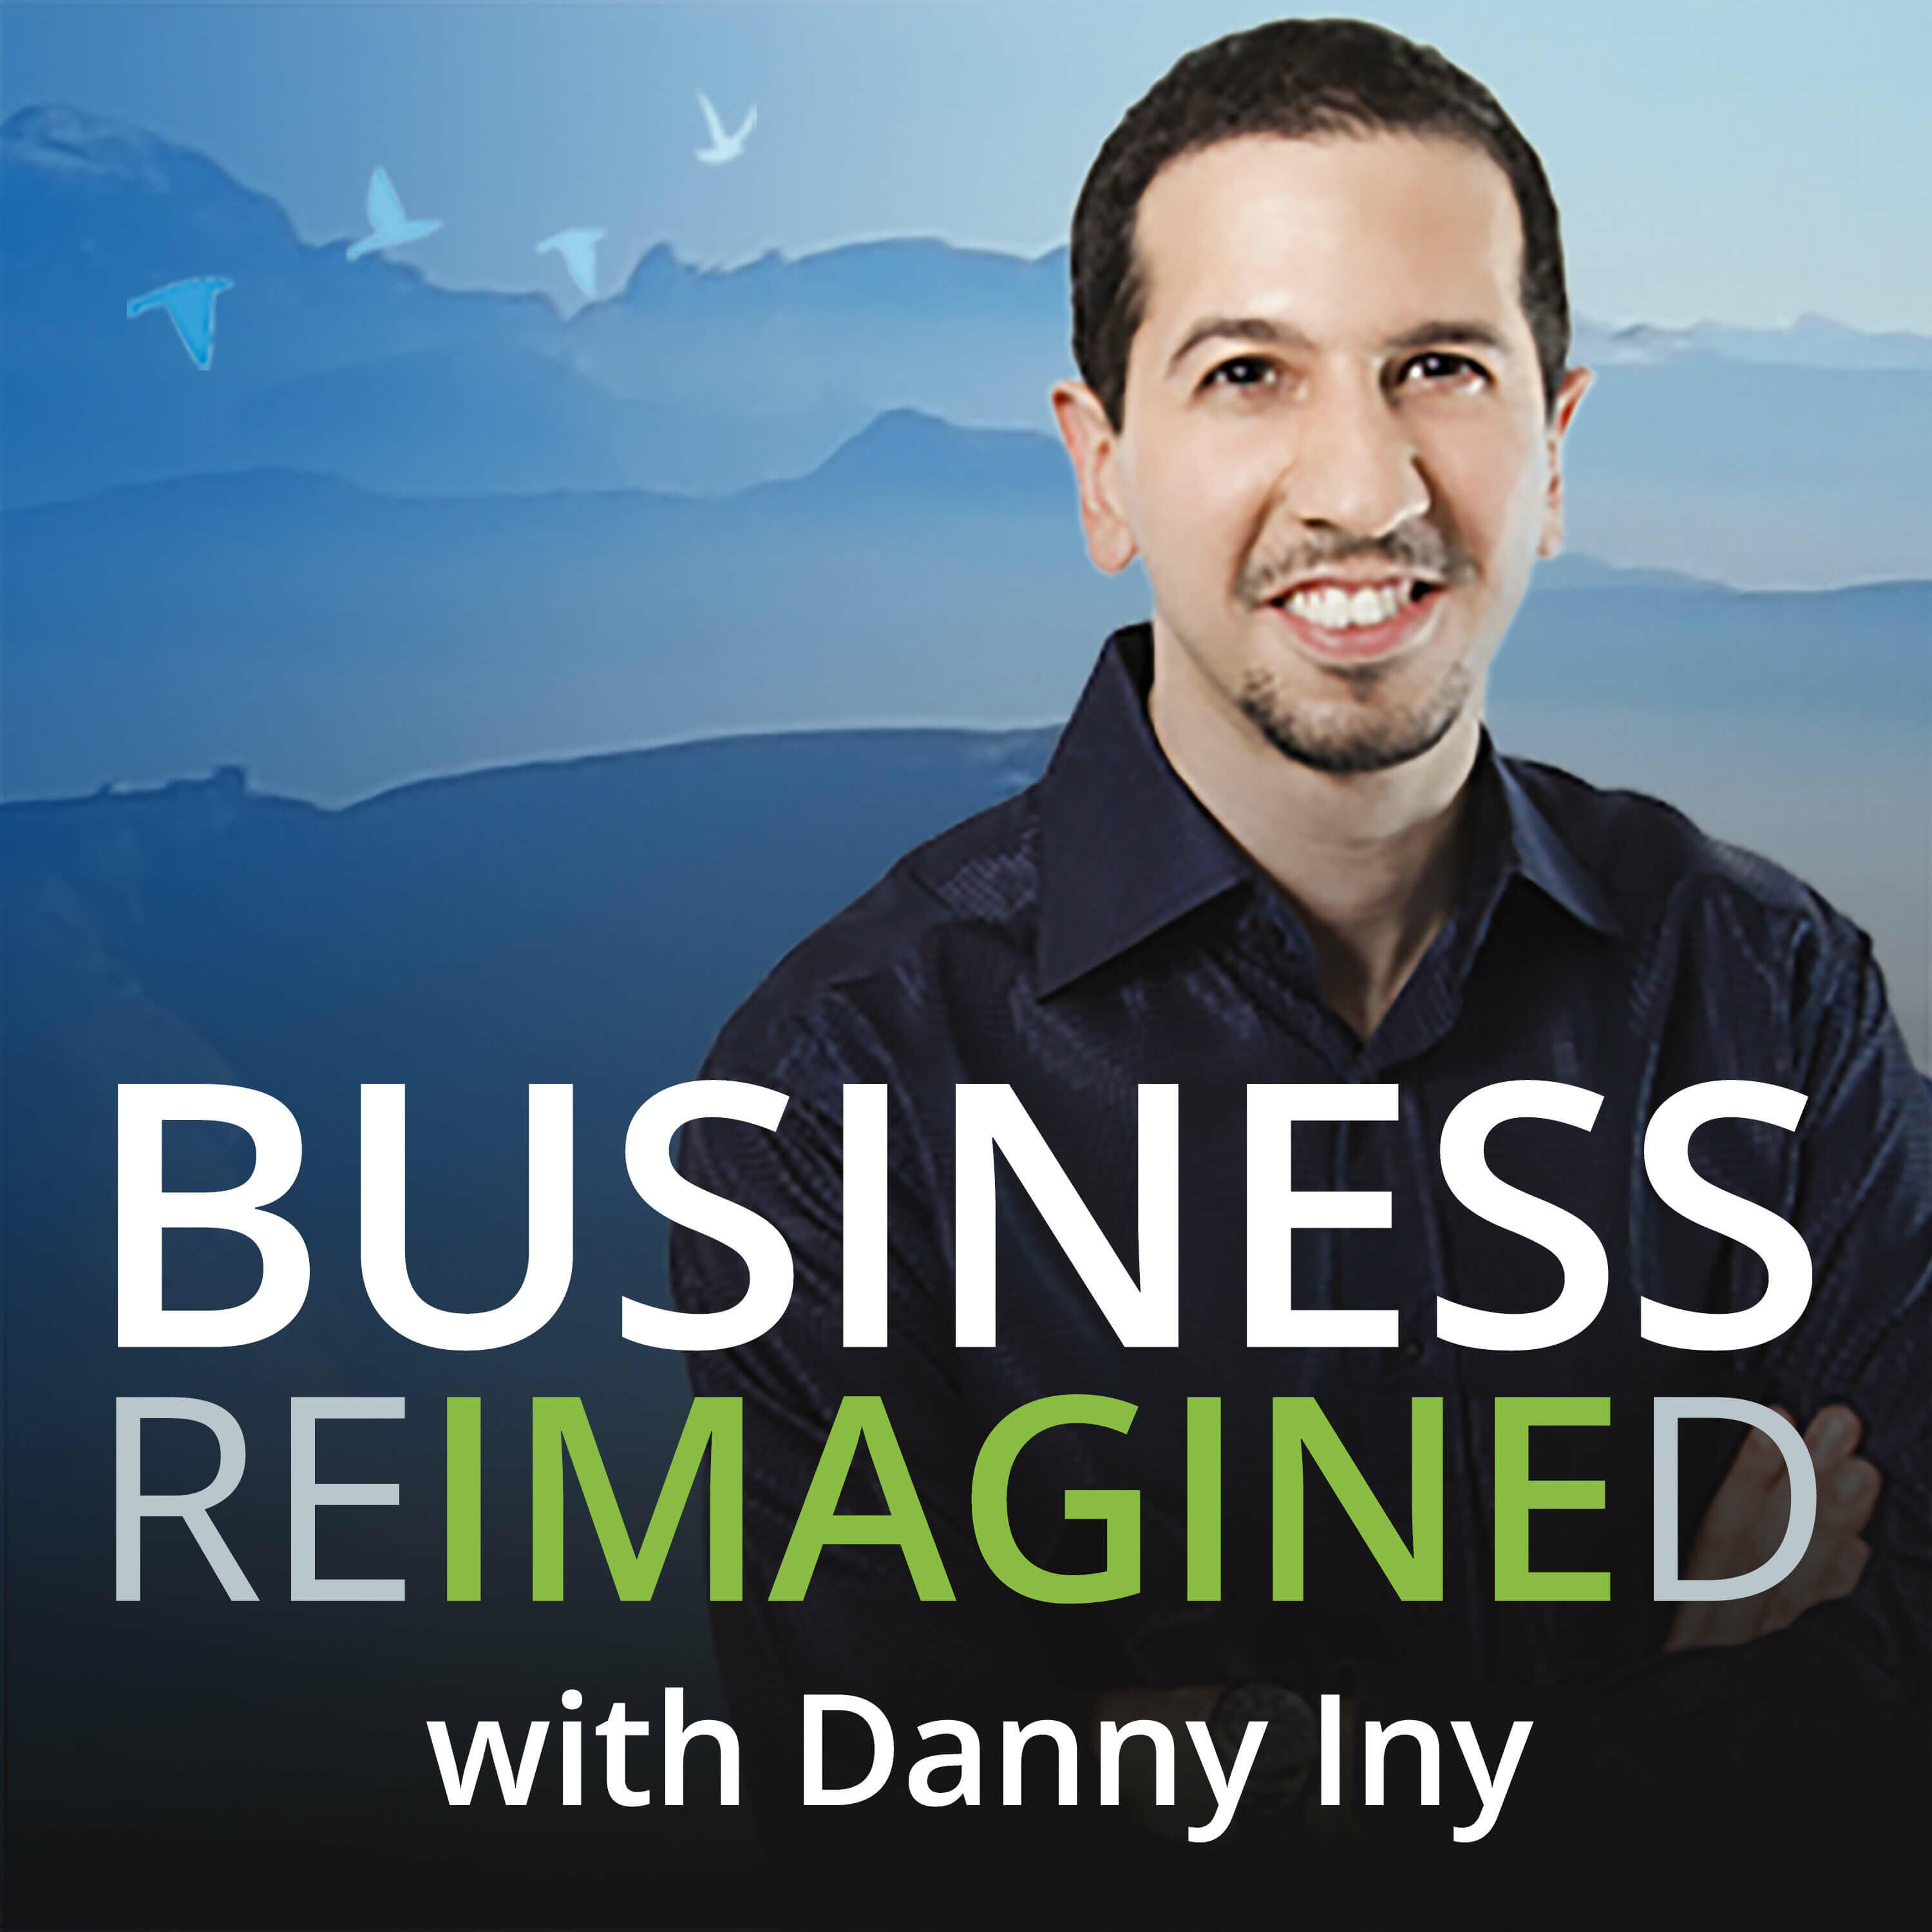 Business Reimagined with Danny Iny   The Mirasee Podcast